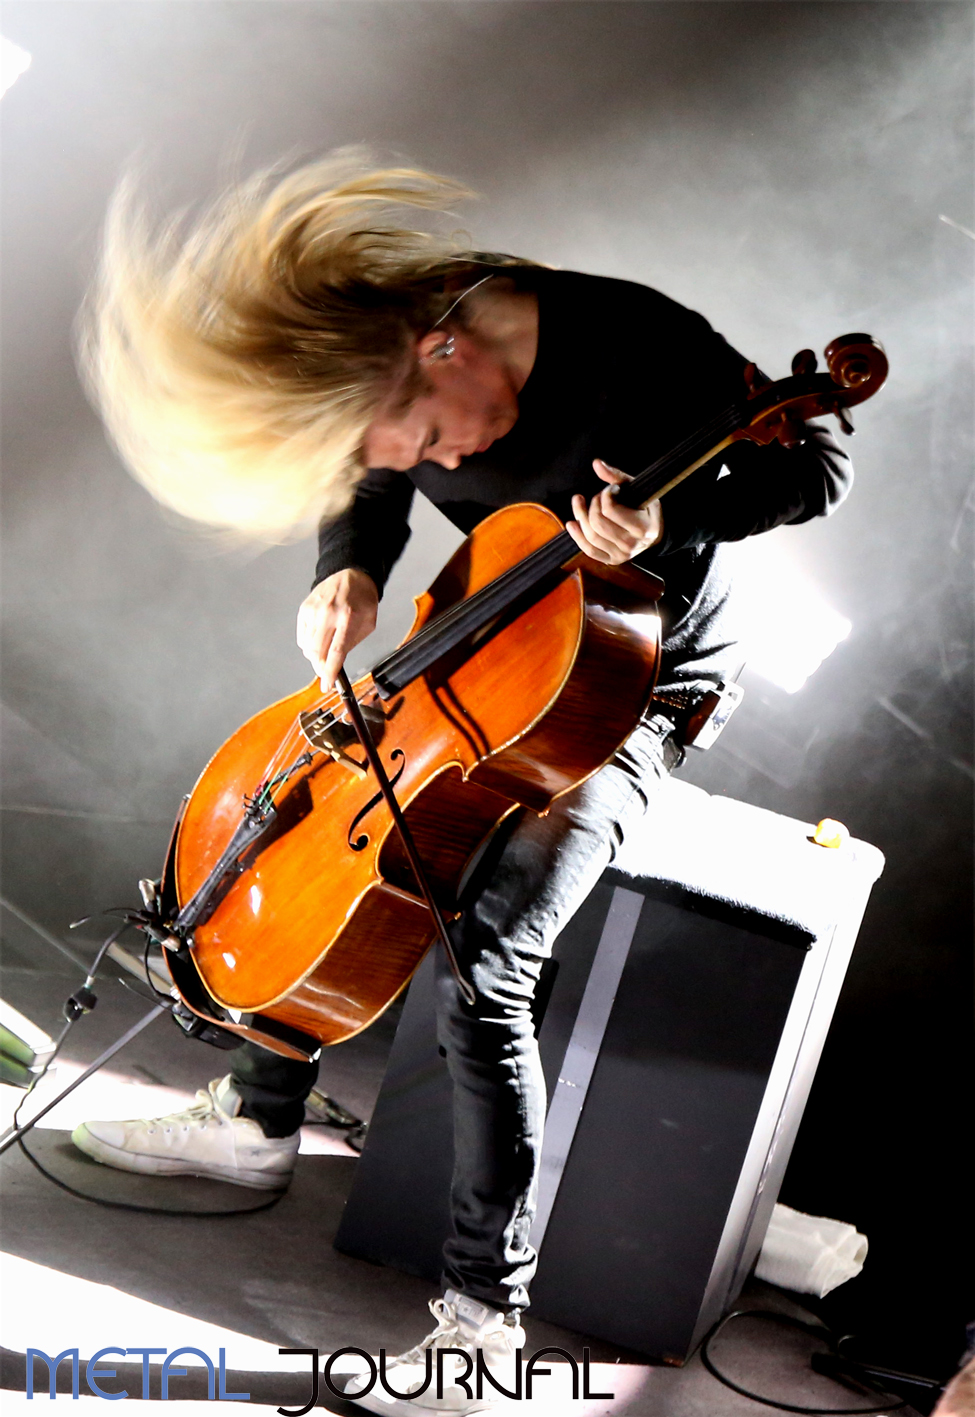 apocalyptica-metal journal pic 1